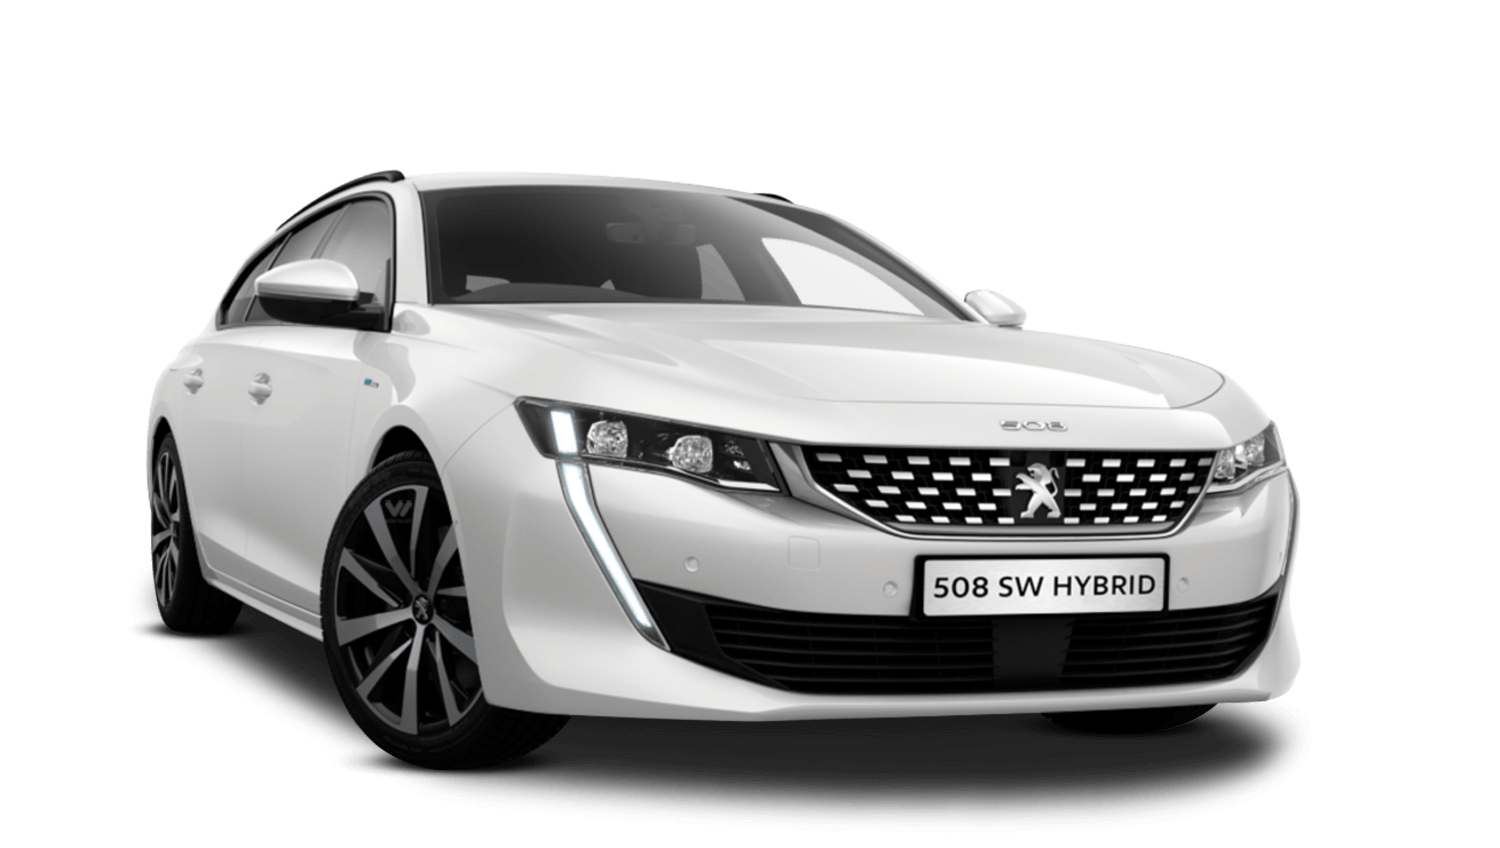 Pearlescent White Peugeot 508 Sw Hybrid